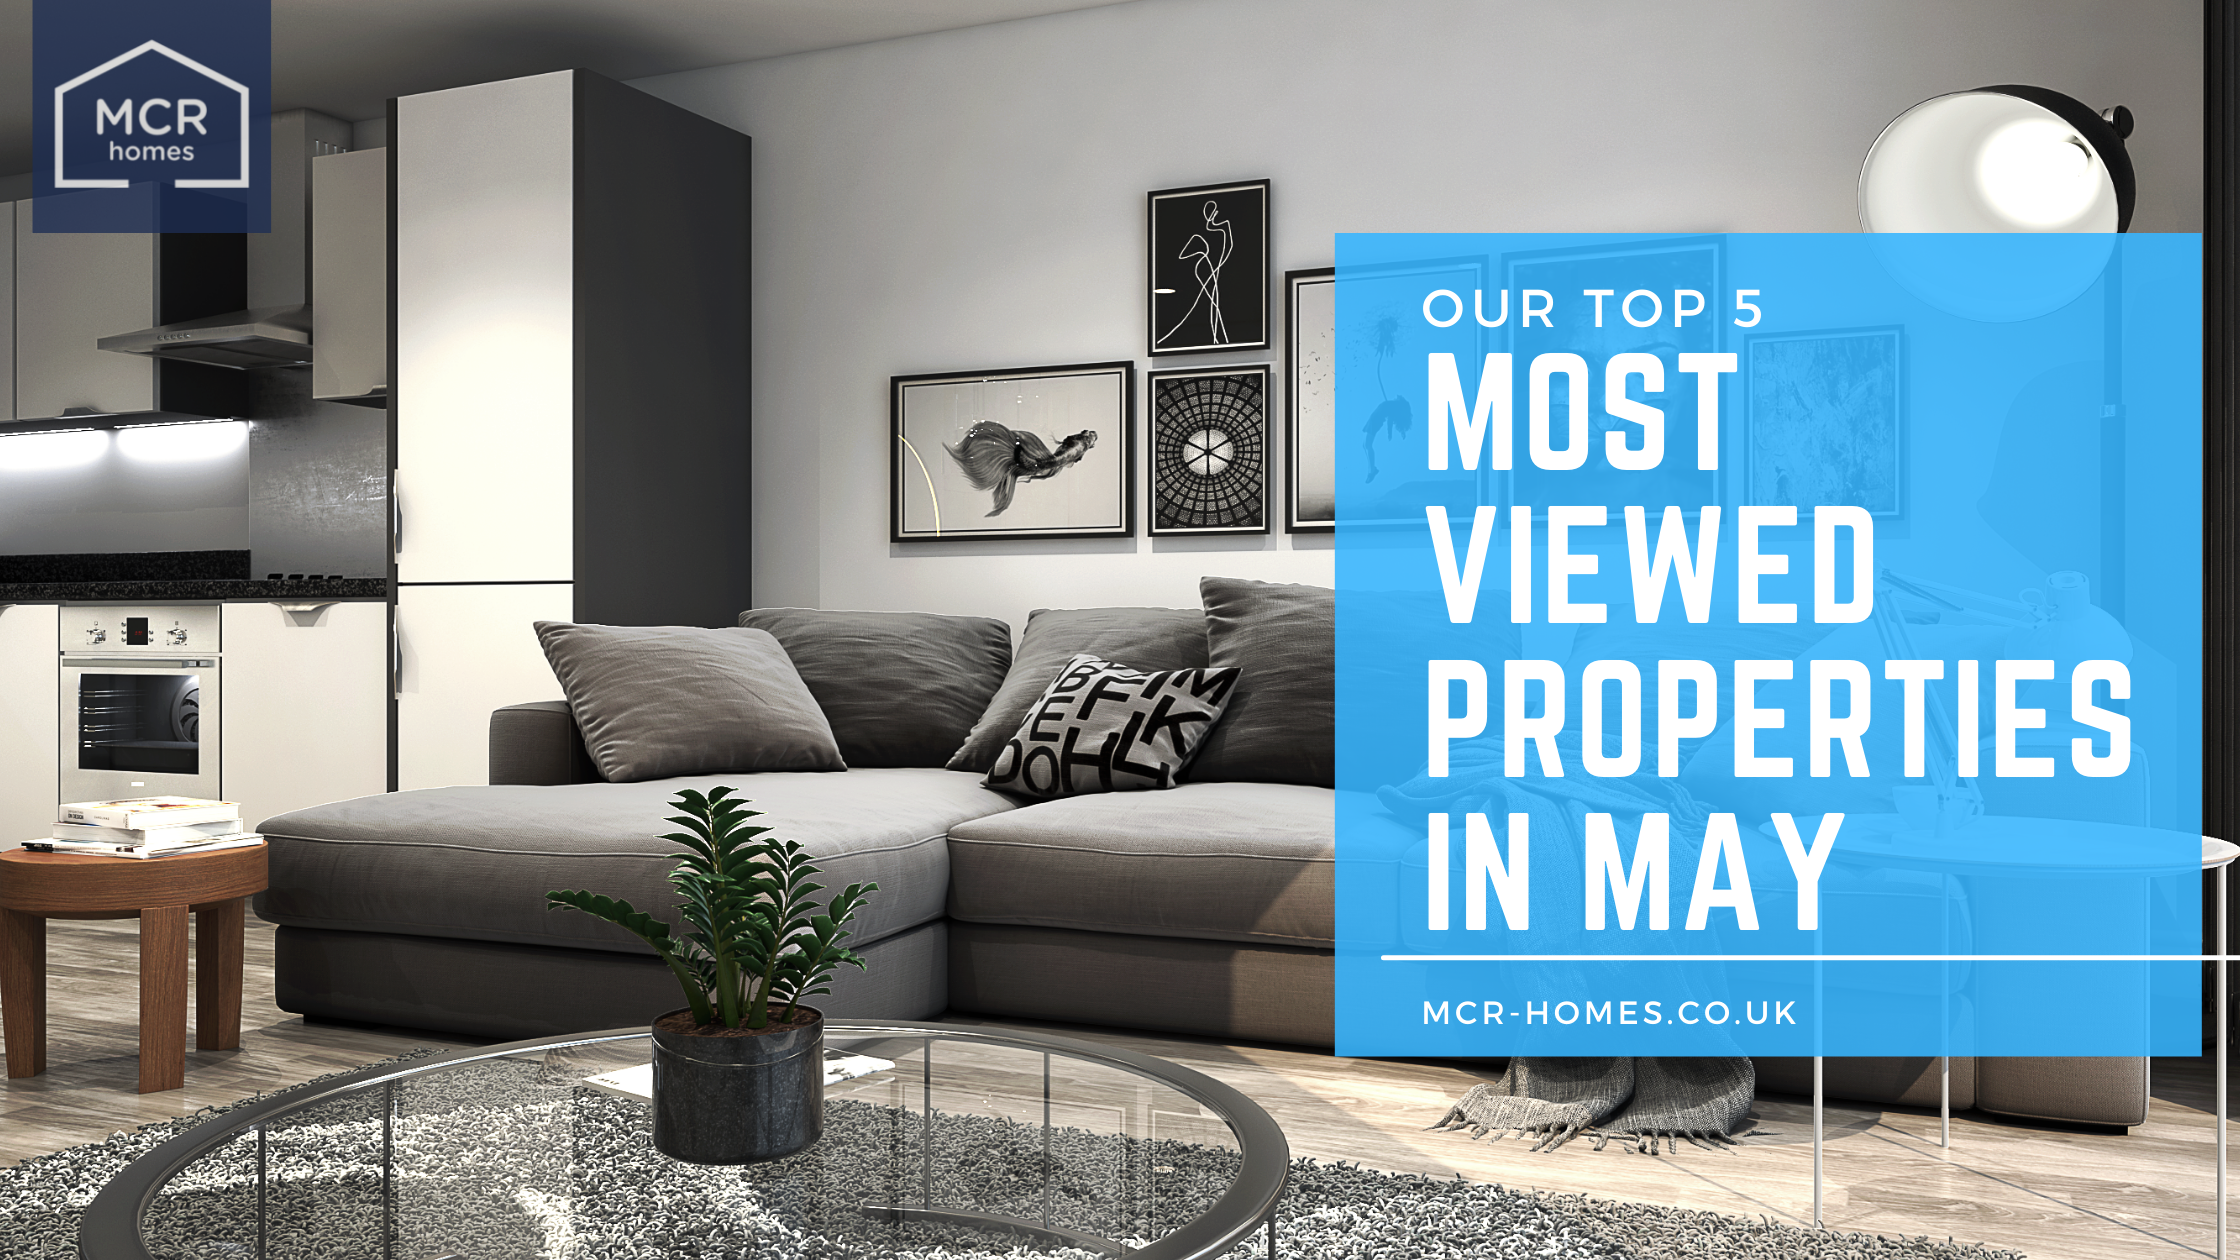 Our Top 5 Most Viewed Properties In May